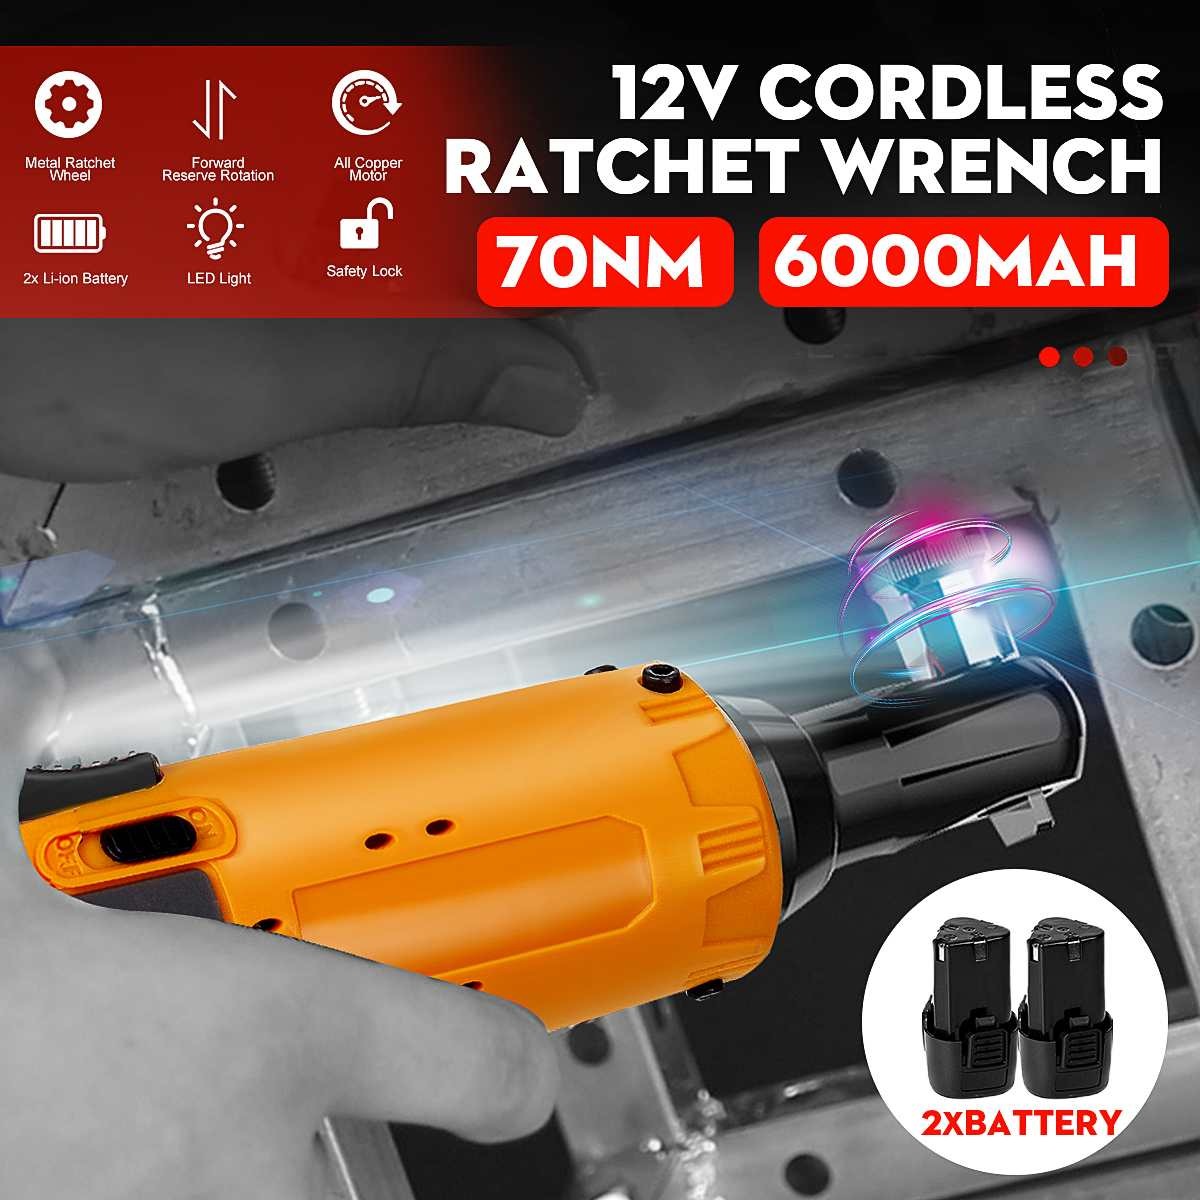 12V 3/8'' 70Nm Cordless Ratchet Wrench Cordless LED Ratchet Right Angle Electric Wrench Rechargeable Power Tool + 2Pcs Battery